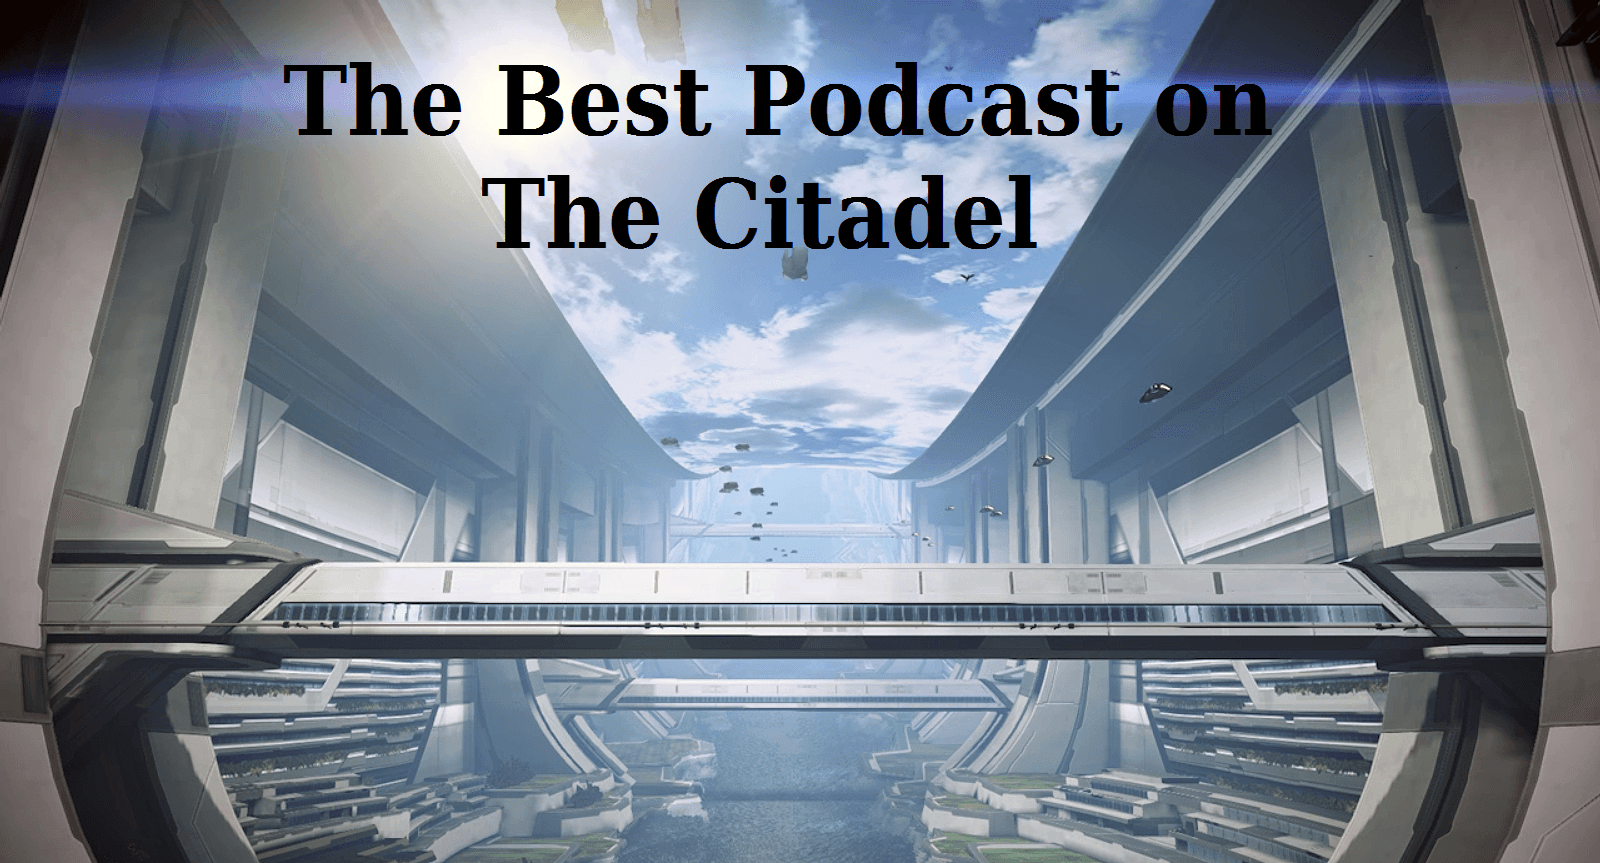 The Best Podcast on the Citadel, Episode 16